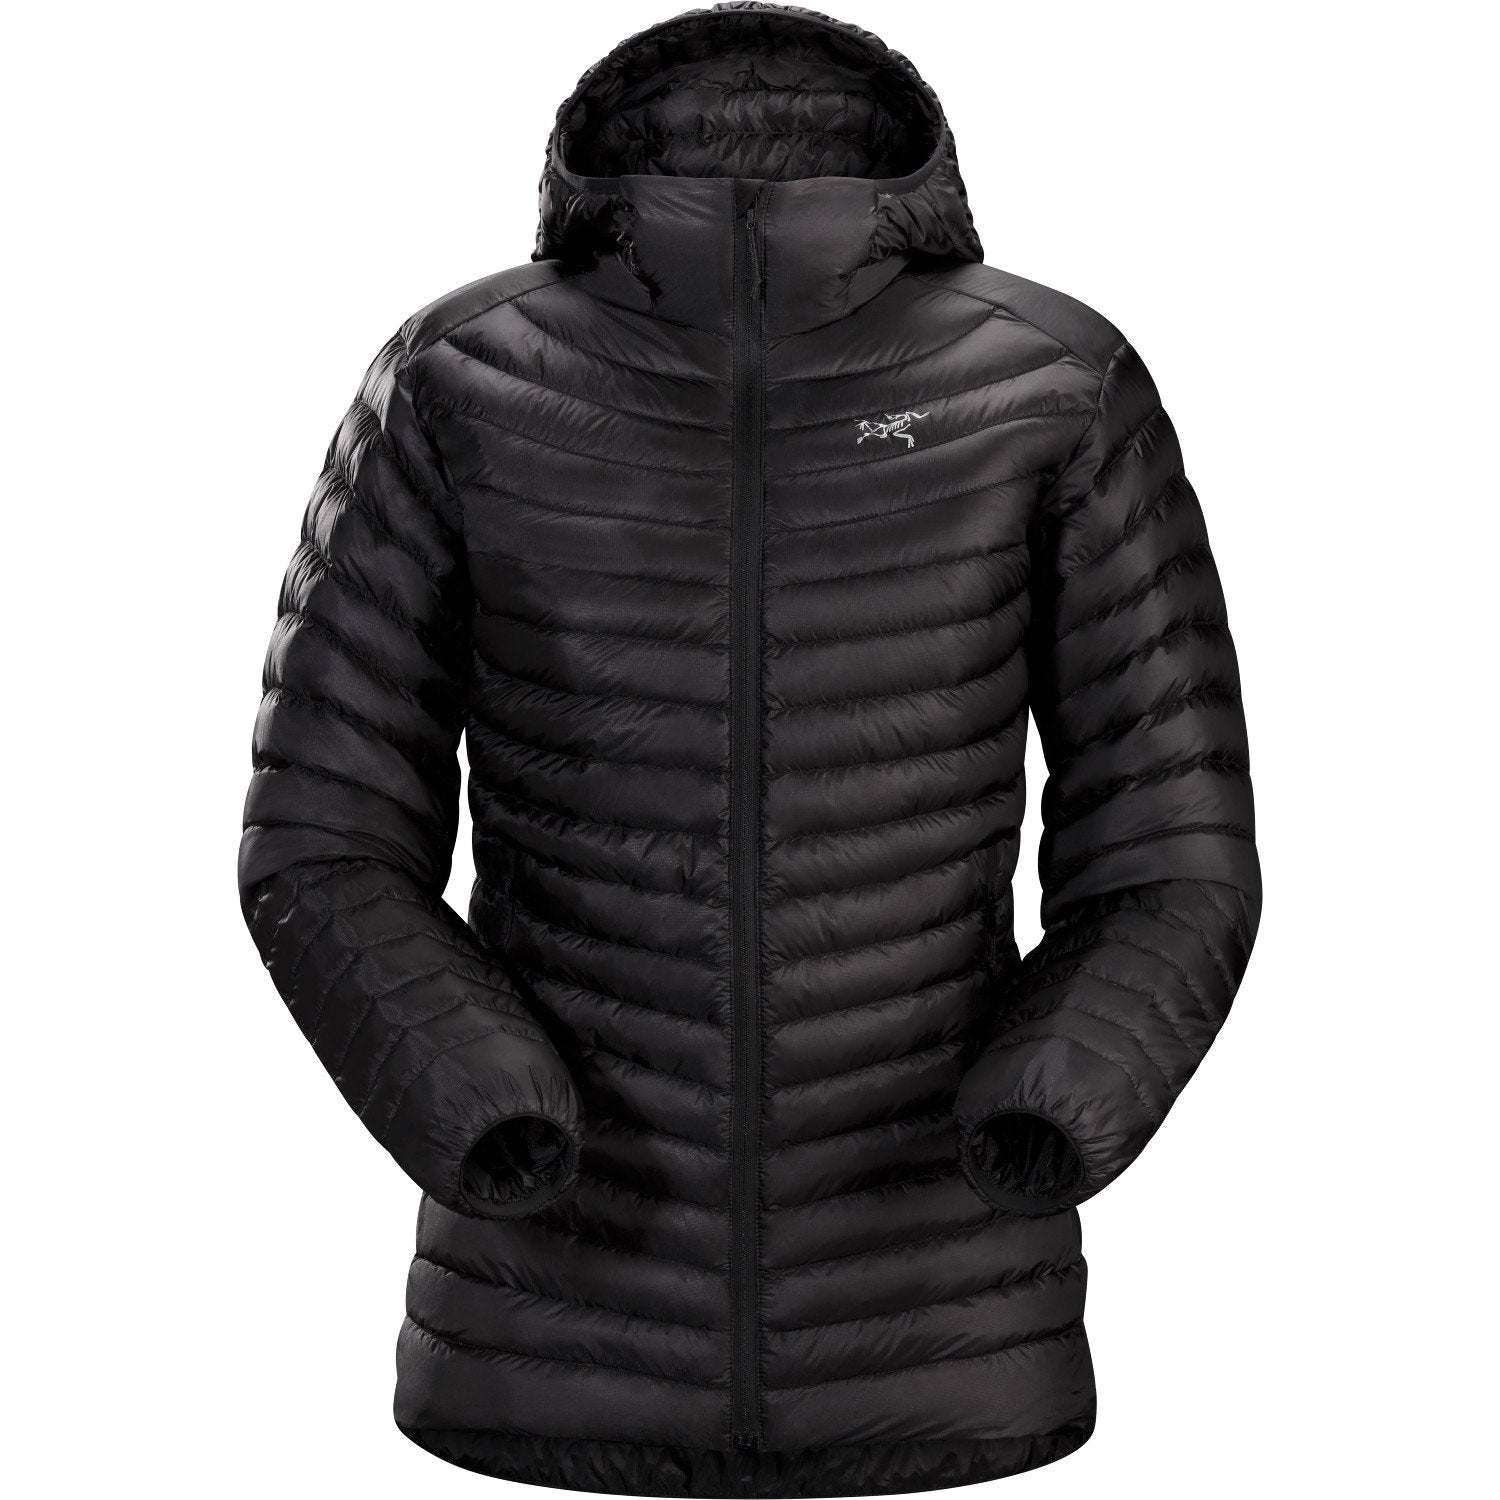 ArcTeryx Cerium SL Hoody Women's in Black